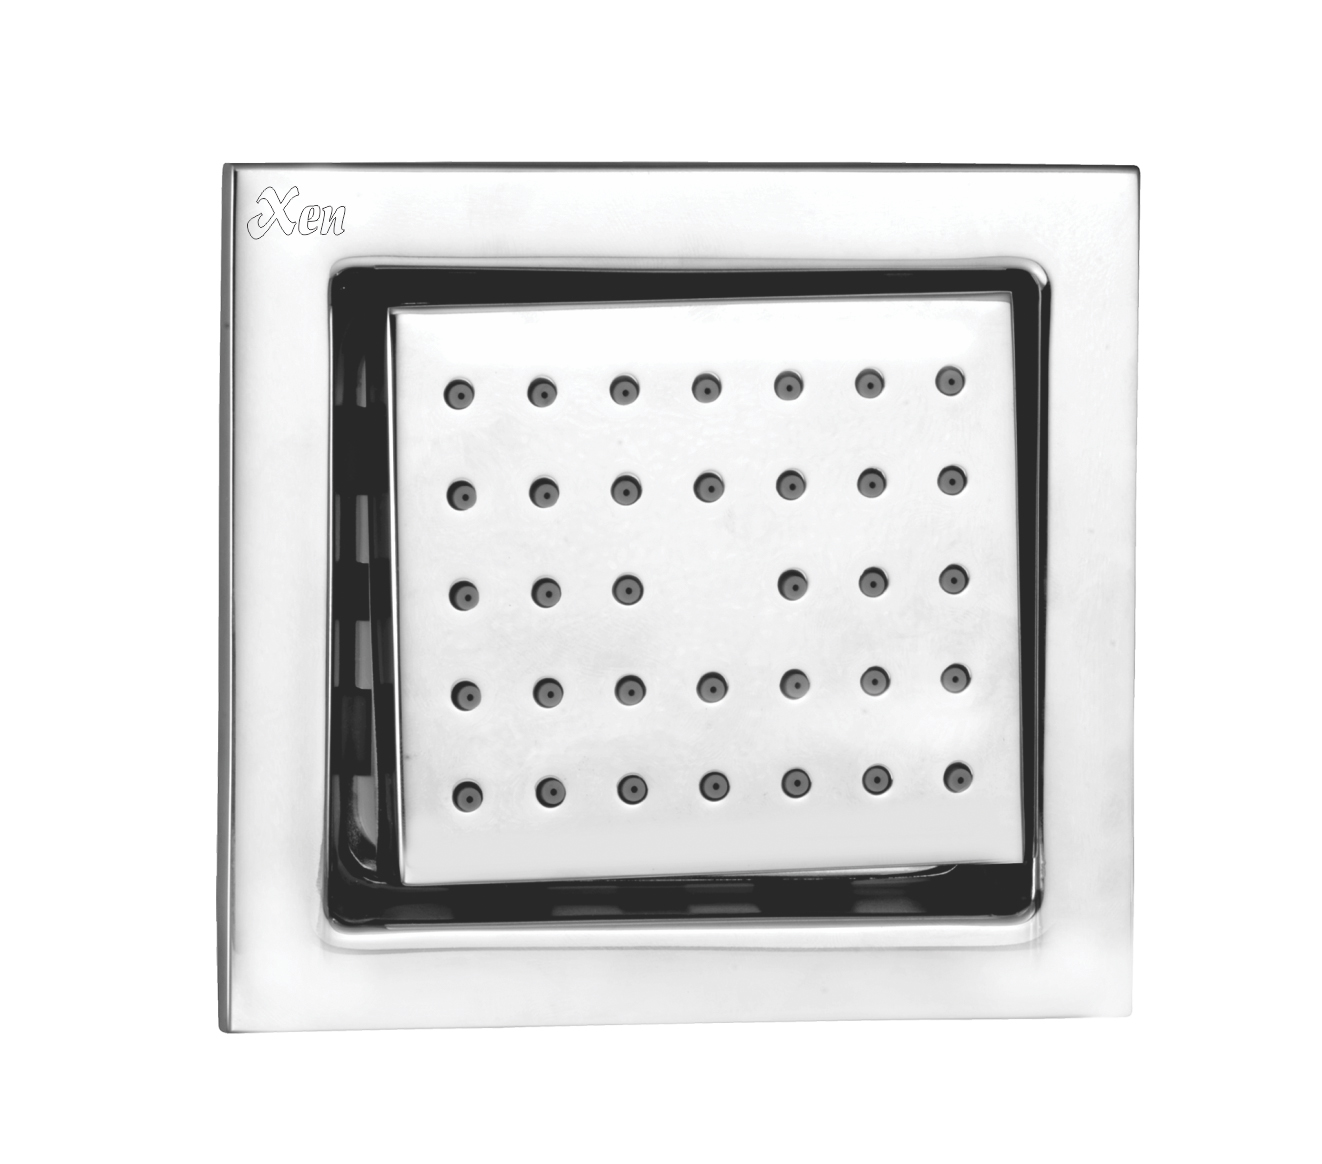 Body Jet Shower Water Tile